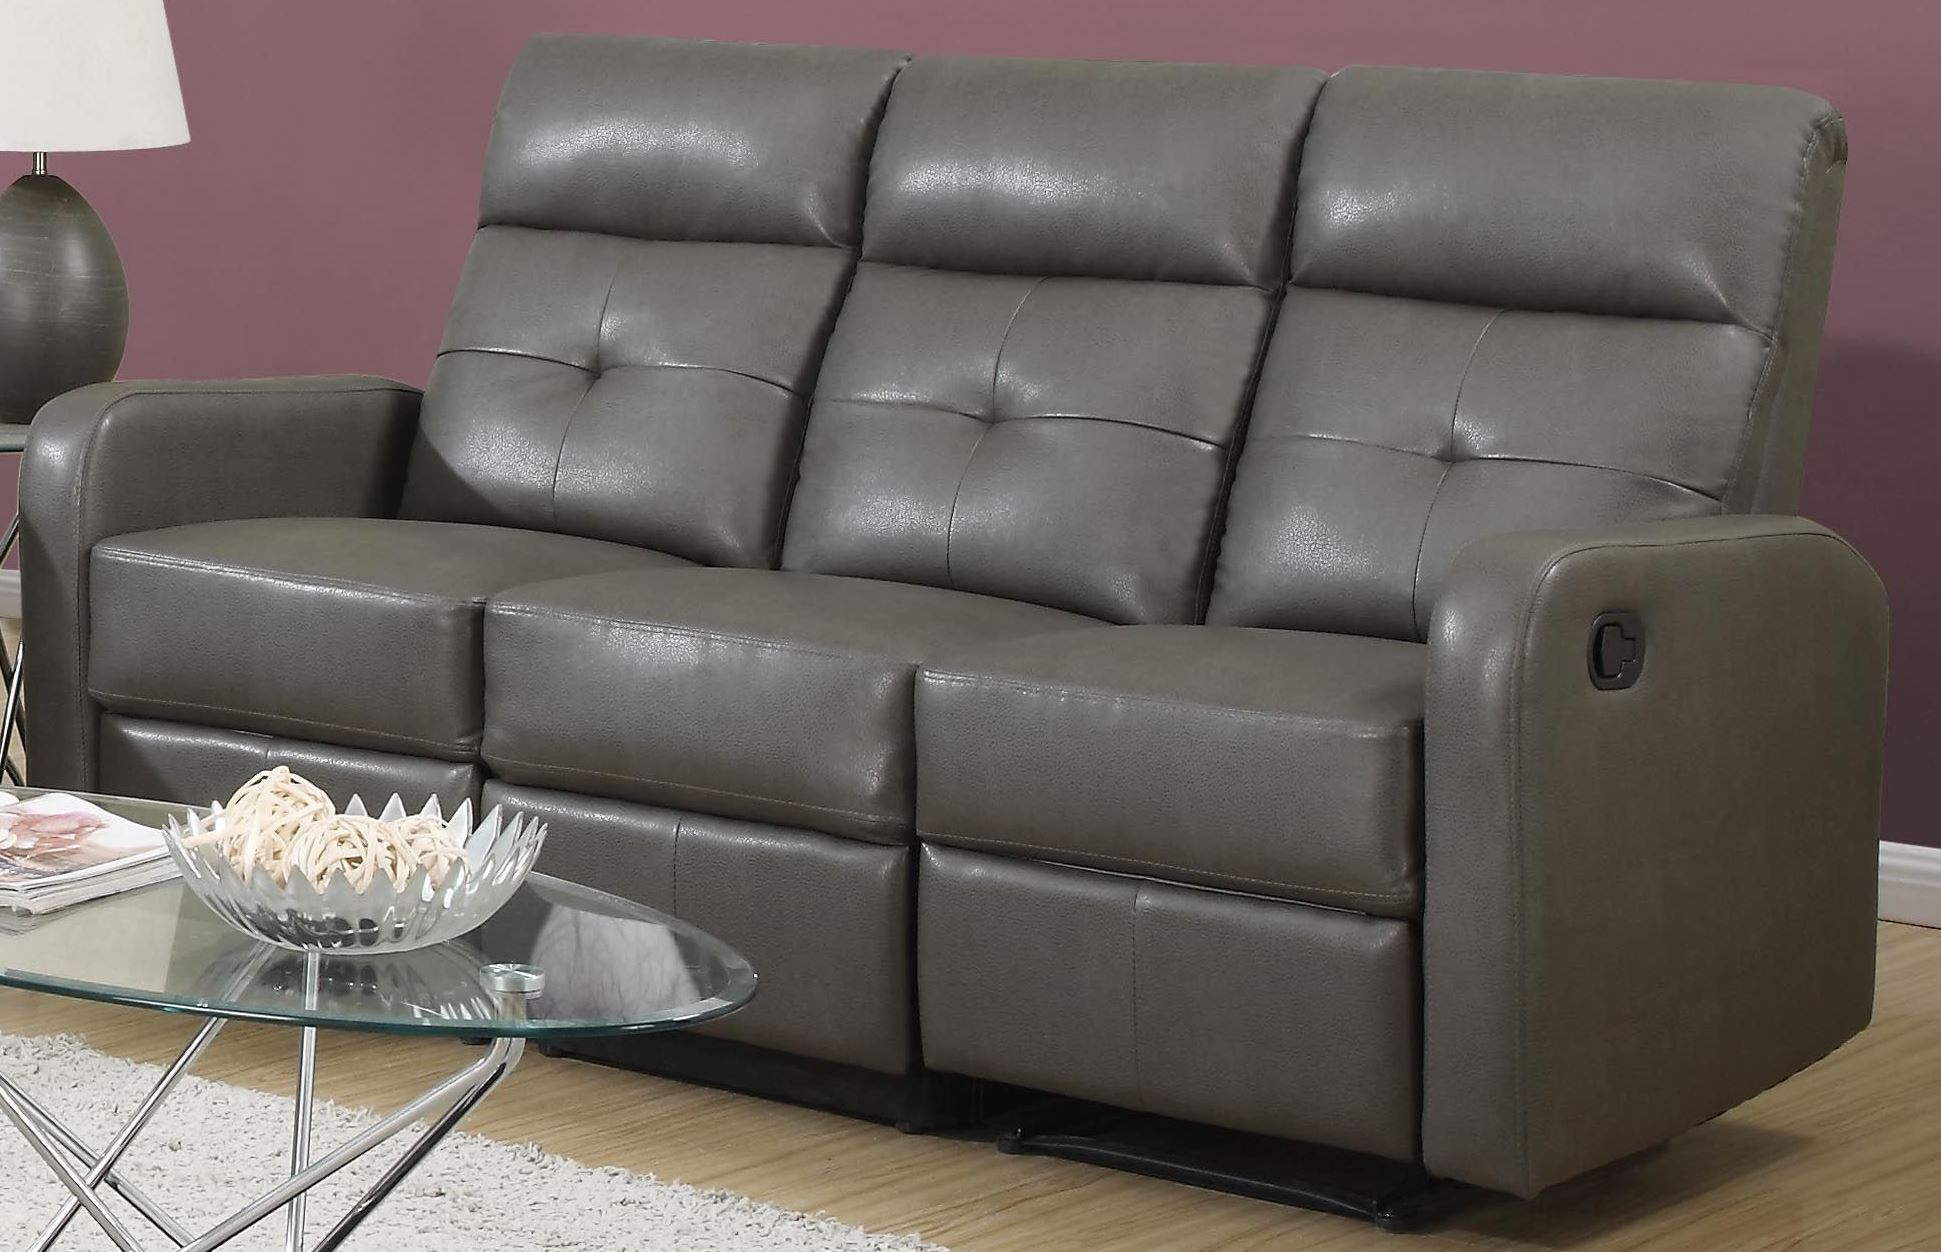 85gy 3 charcoal grey bonded leather reclining sofa 85gy 3 monarch. Black Bedroom Furniture Sets. Home Design Ideas